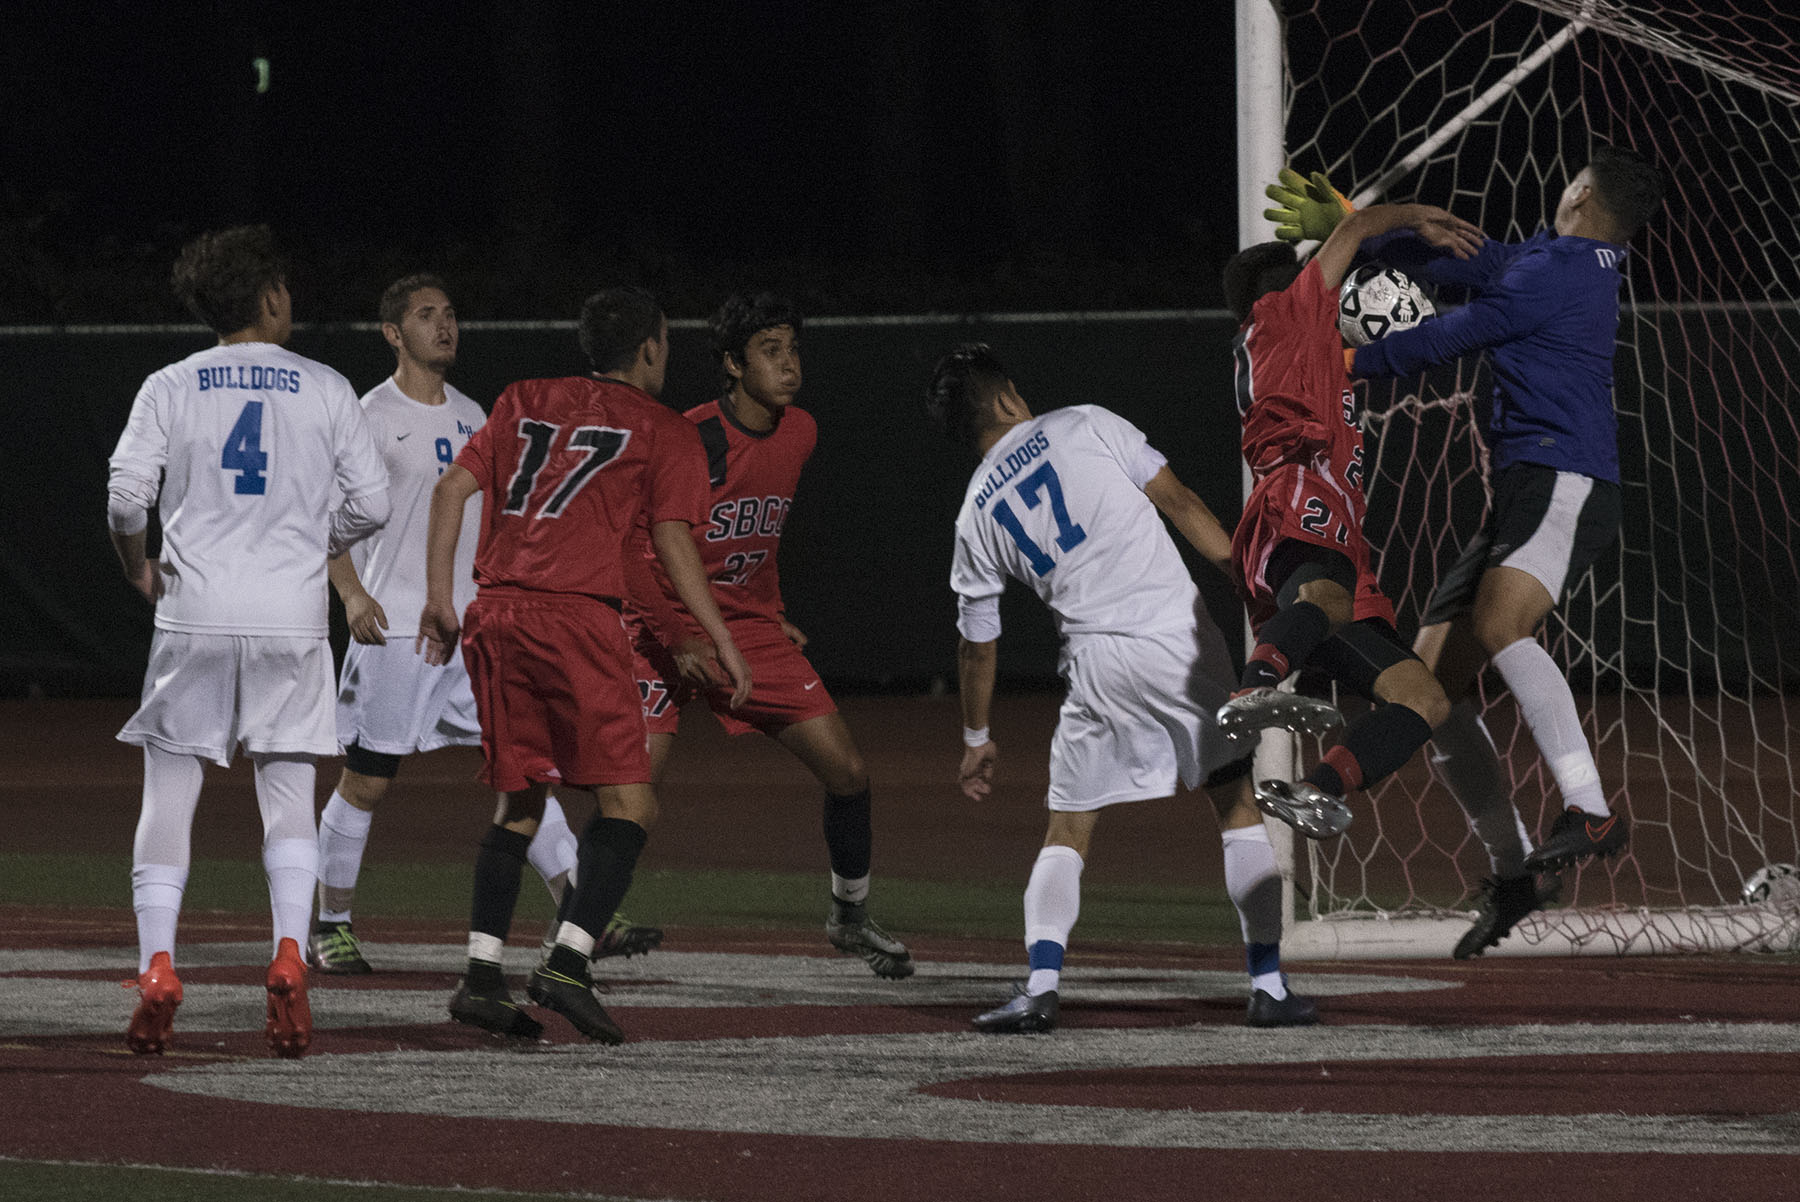 Vaquero defender Nicolas Genthon (No. 21) gets tangled up with Bulldog goalie Migel Gomez (No. 1) while trying to score on Tuesday, Oct. 11, at La Playa Stadium. City College defeated Allan Hancock College, 2-0.